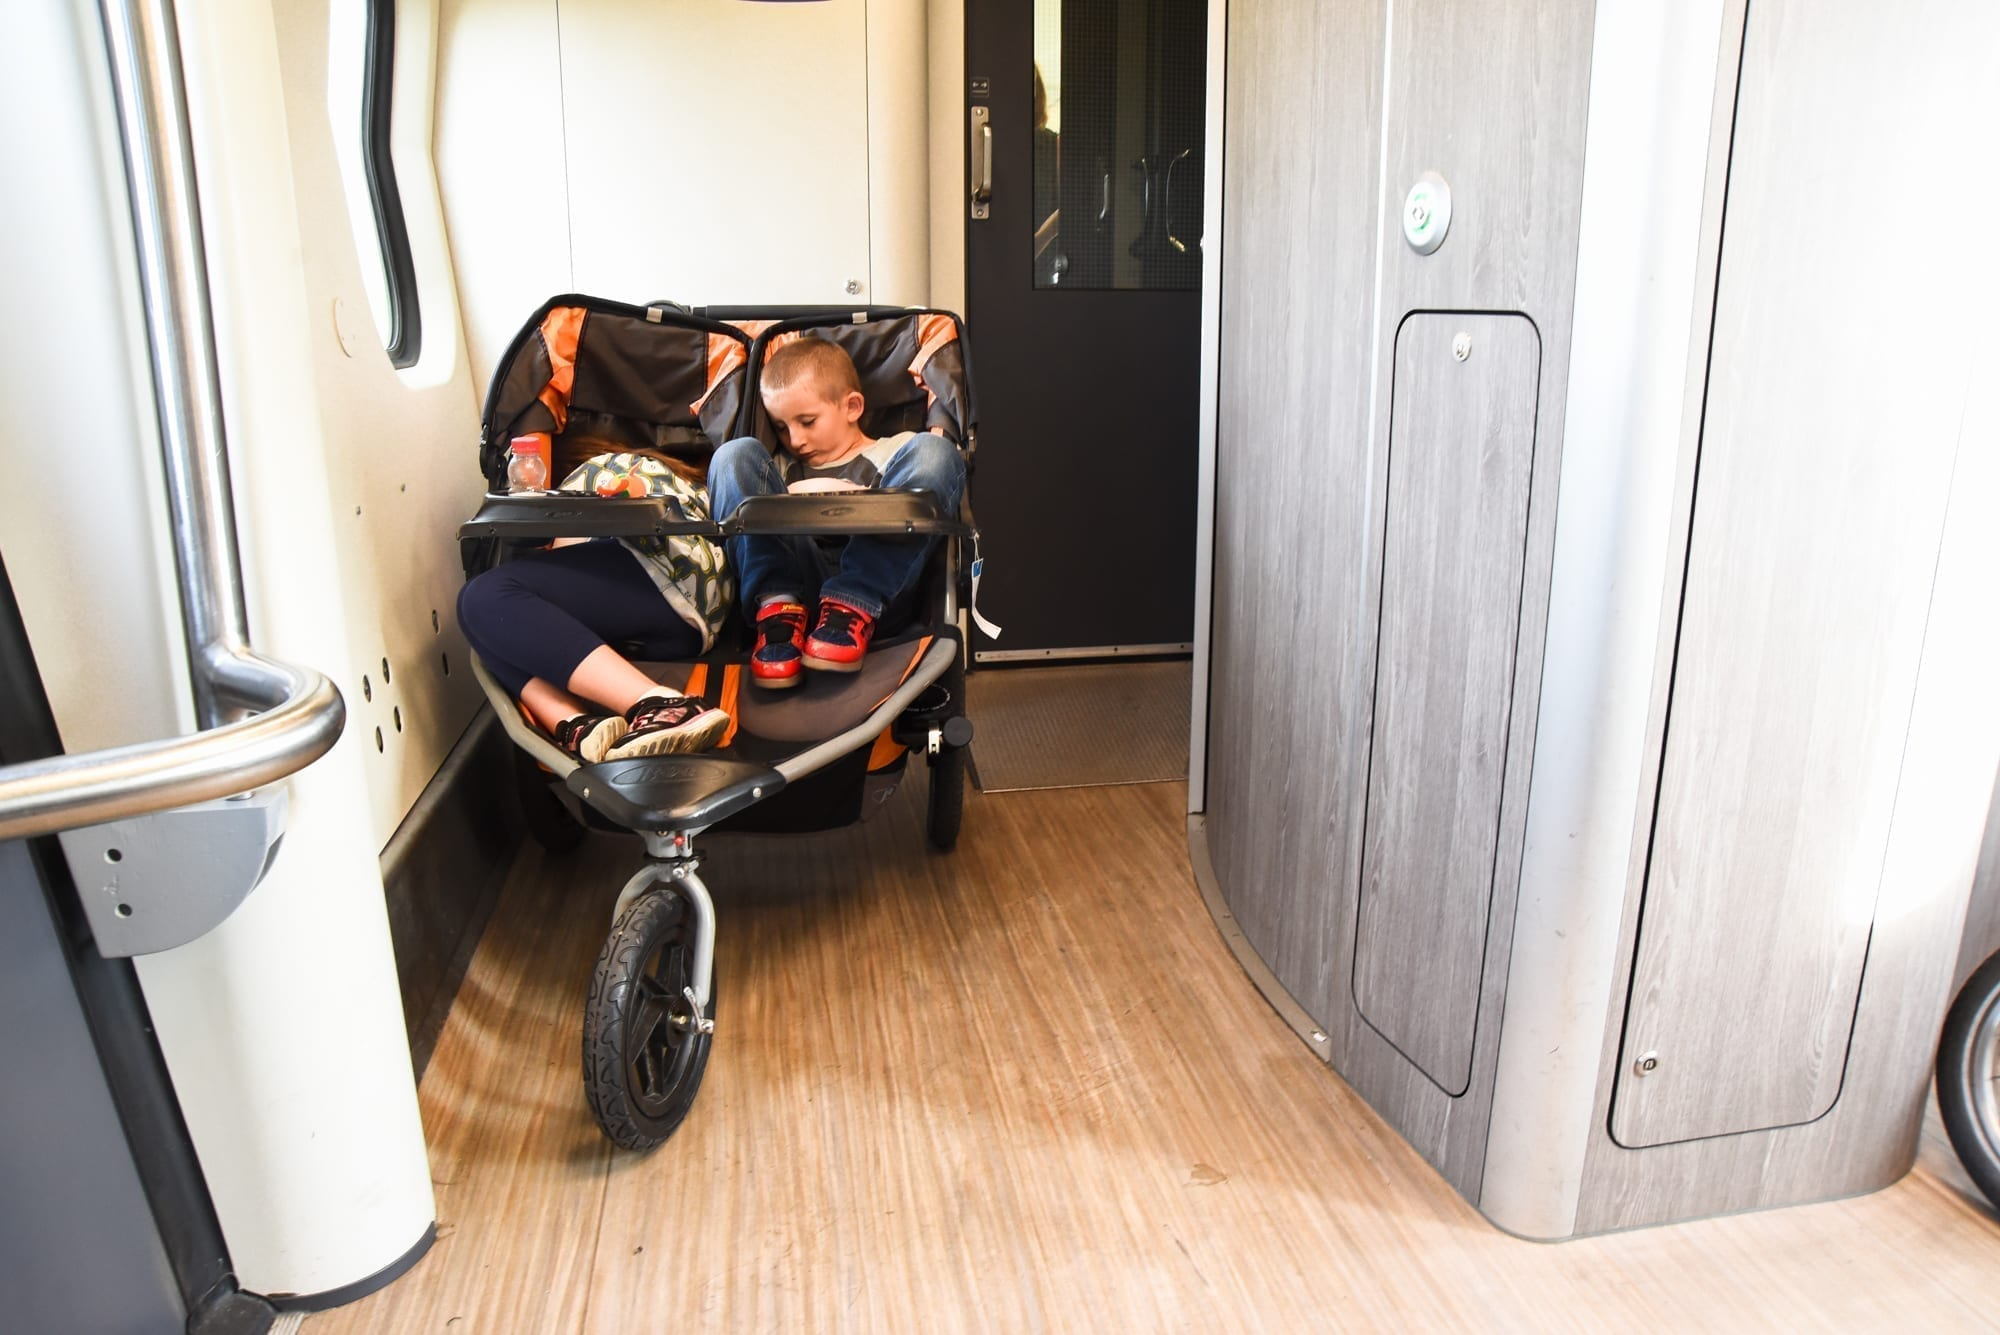 access on the train in holland - spaces for wheelchair users, strollers, bikes